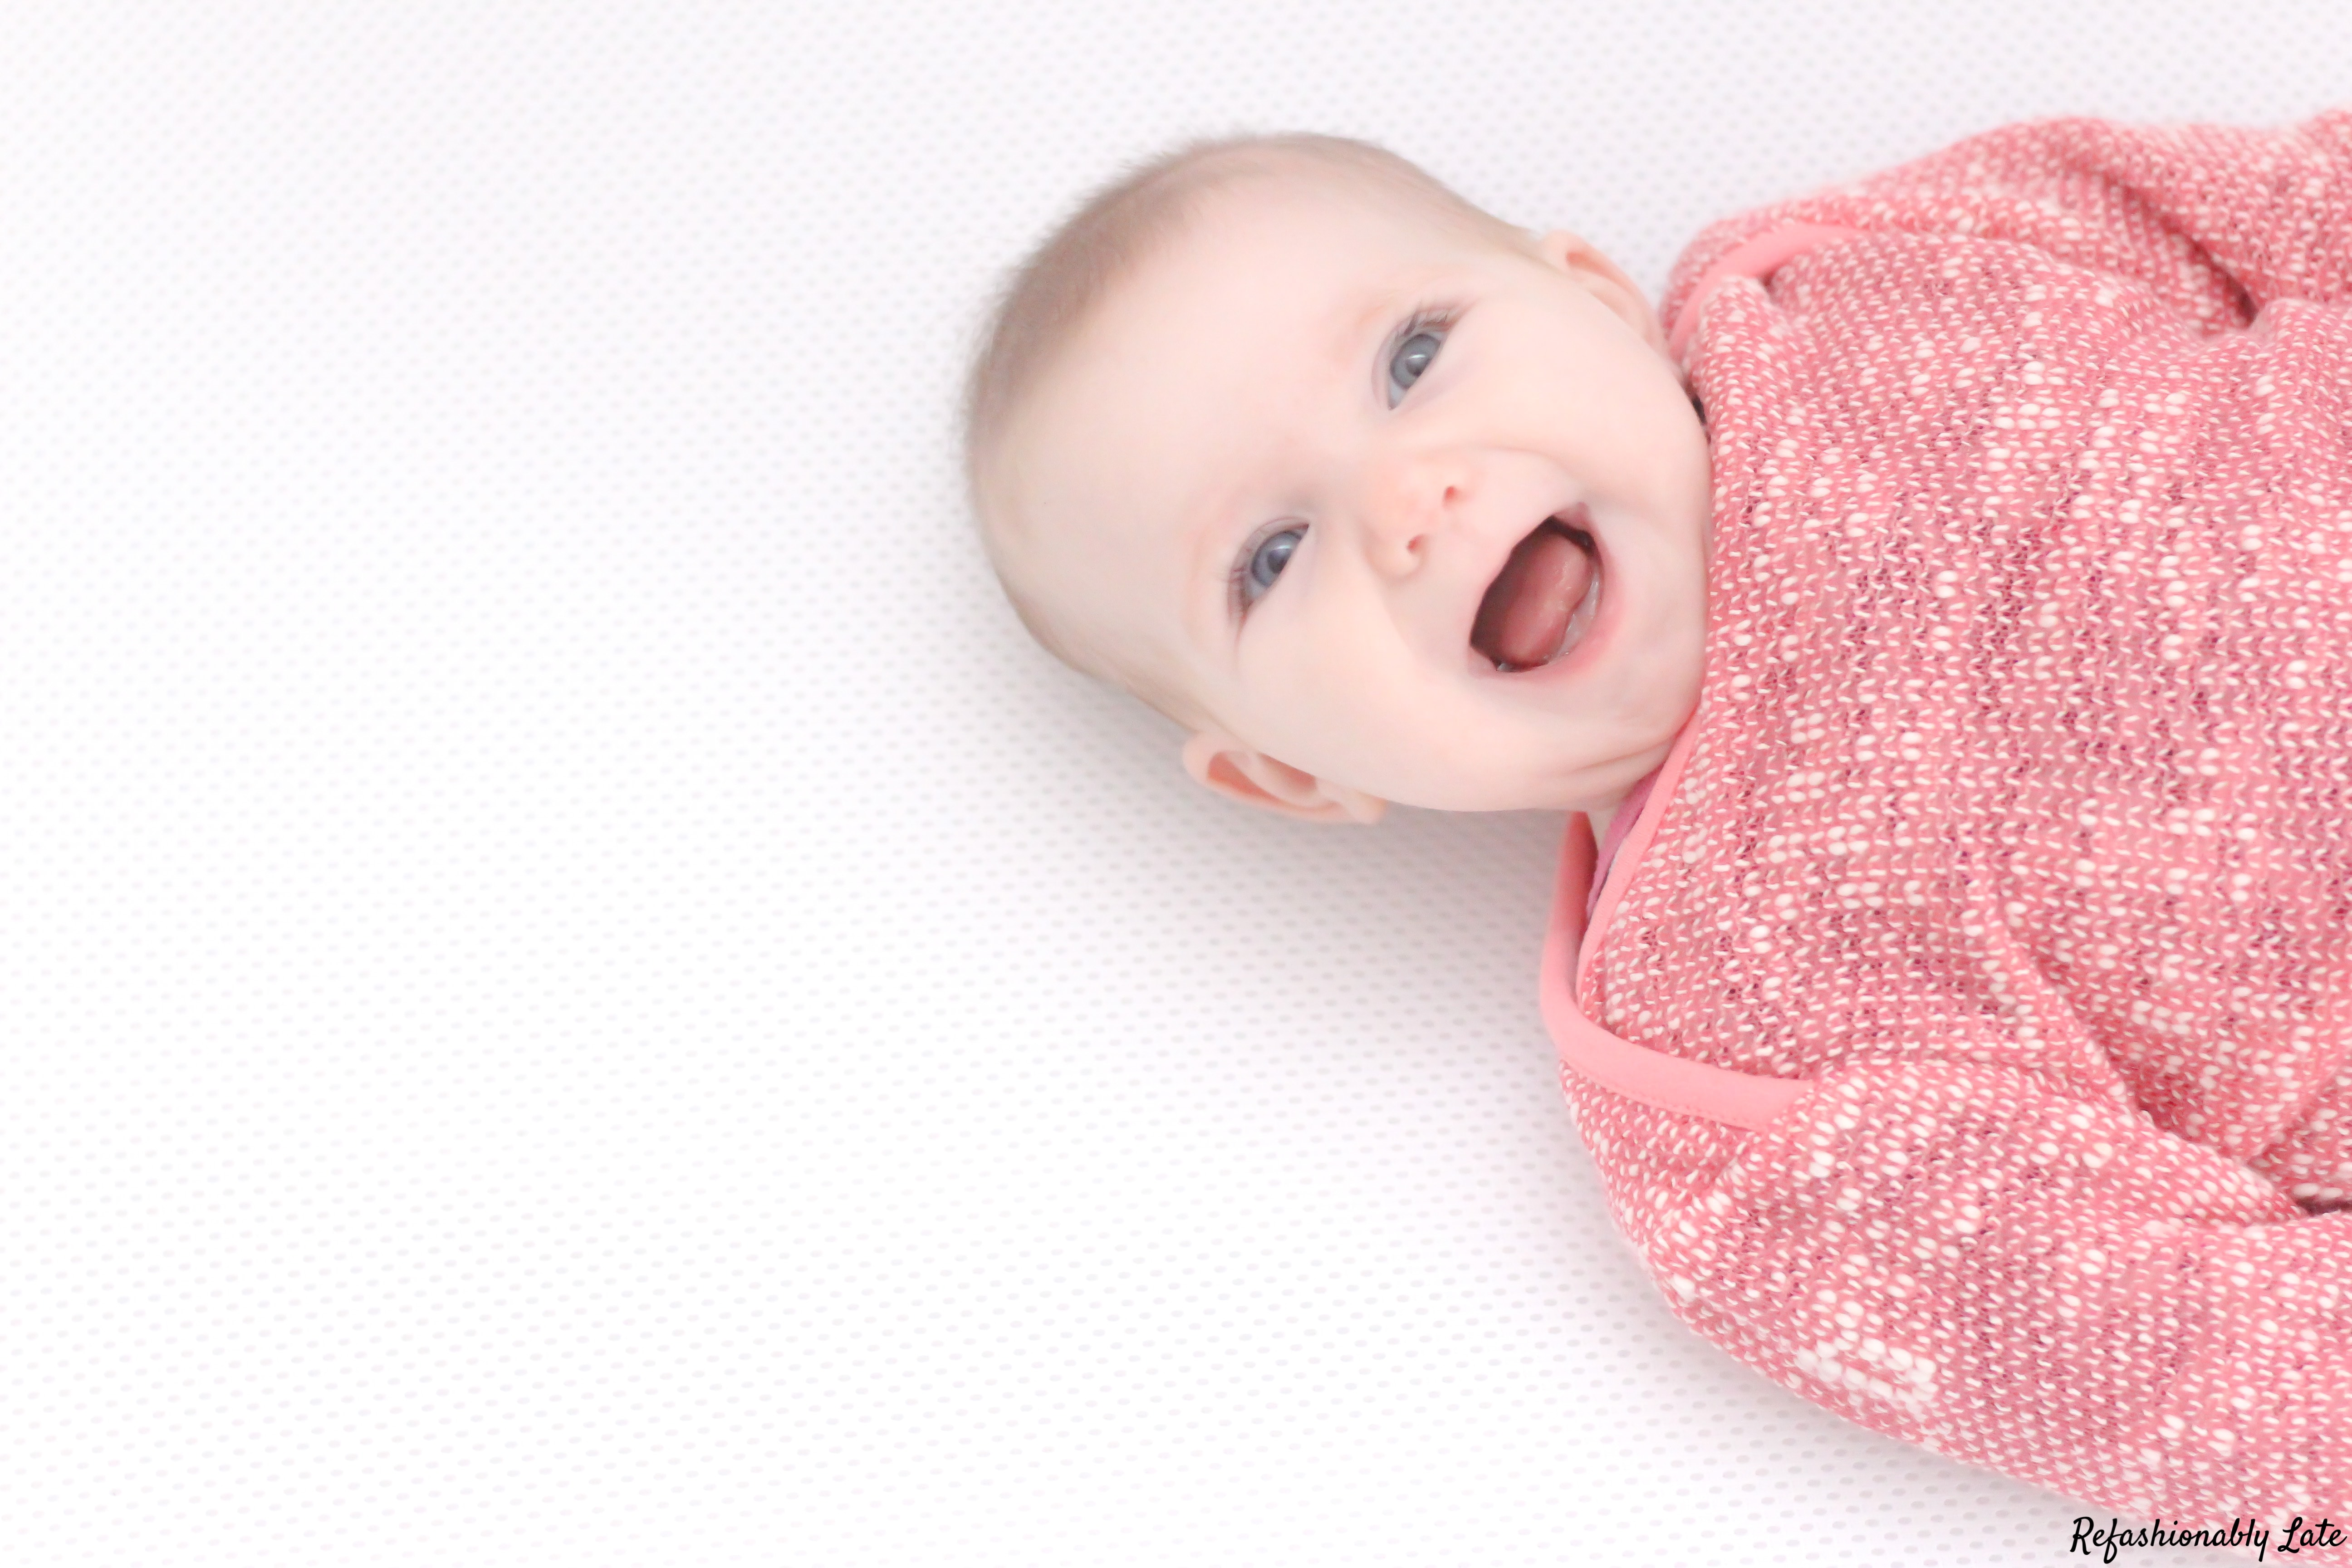 Knowing My Baby is Safe - www.refashionablylate.com